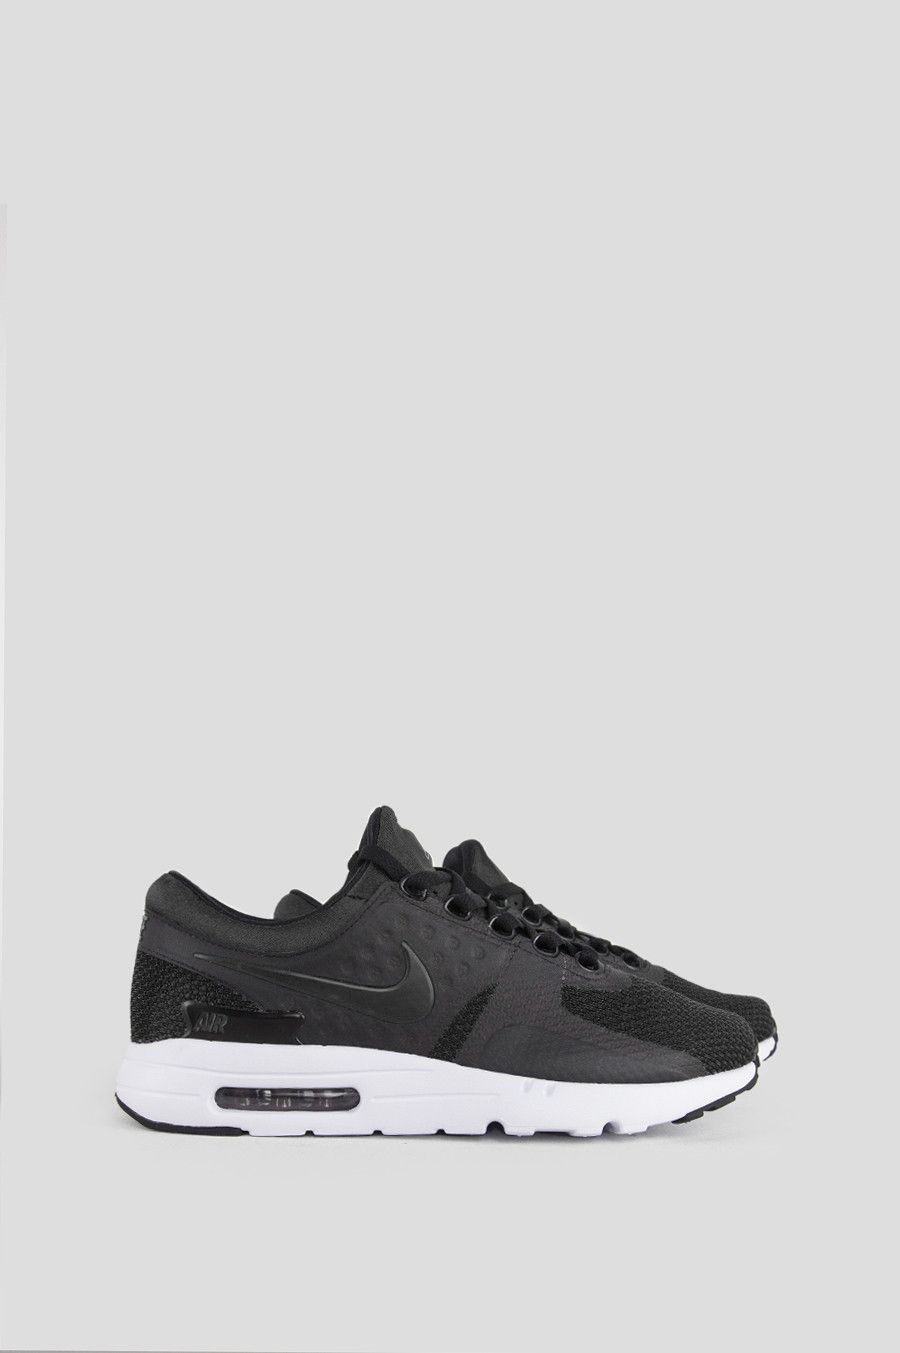 quality design 6d8d6 93d51 ... Explora Velas Negras, Mujeres Nike, ¡y mucho más! NIKE WOMENS AIR MAX